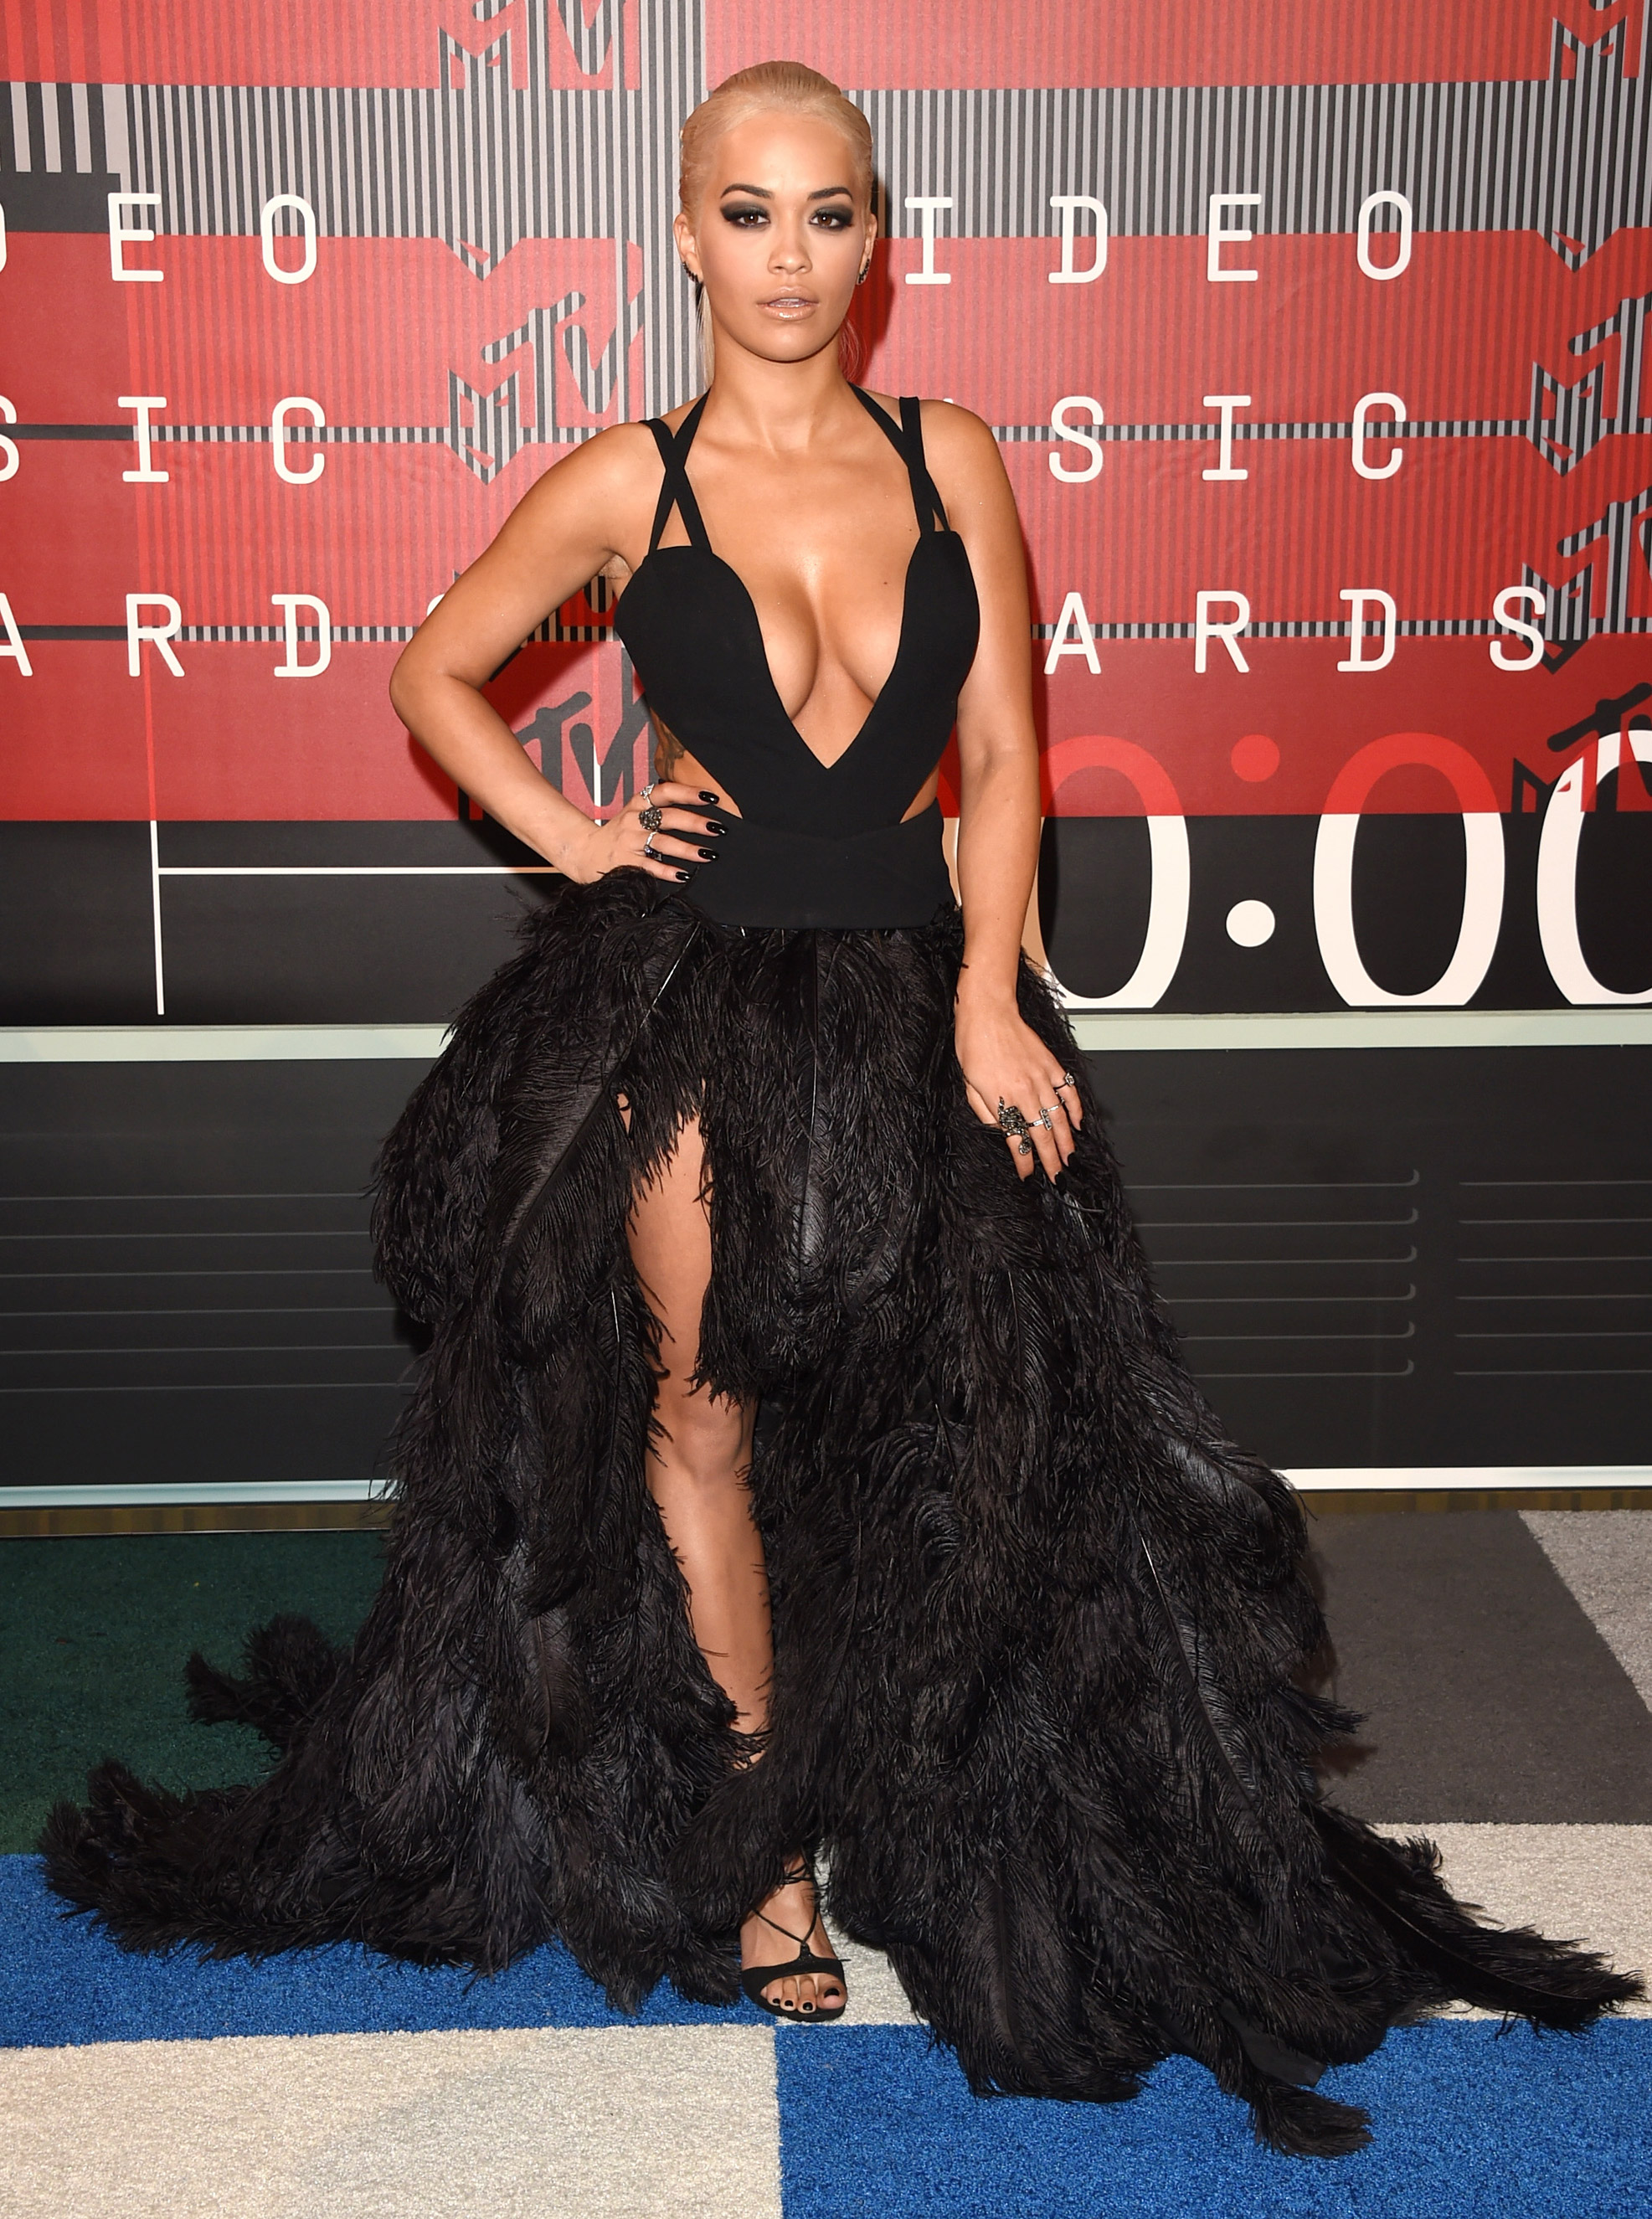 Rita Ora arrives at the 2015 MTV Video Music Awards at Microsoft Theater on Aug. 30, 2015 in Los Angeles.